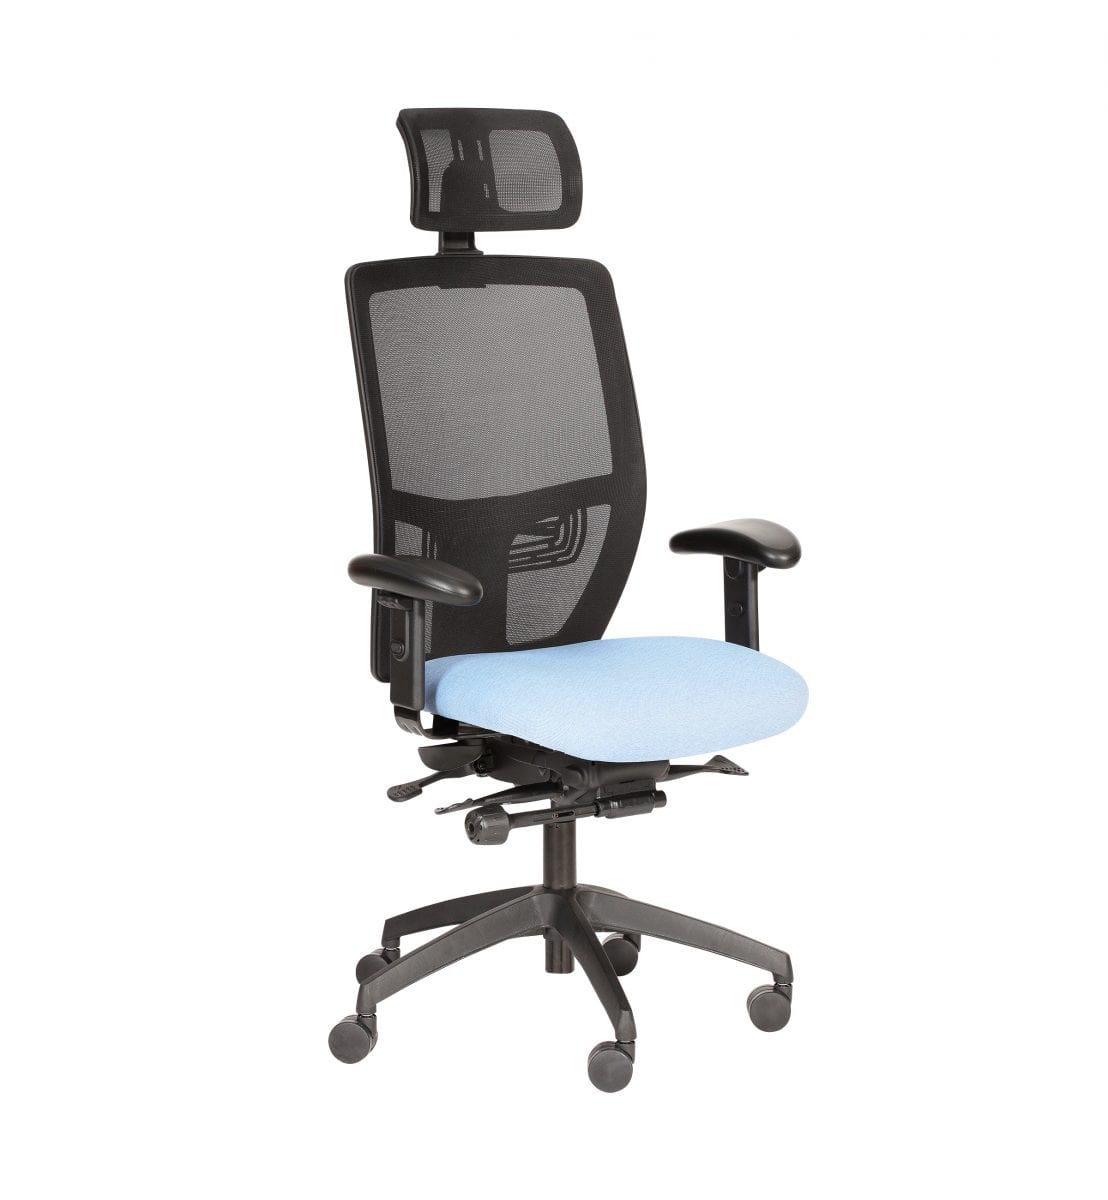 Admirable Pmb83Adj Posturemax Cool Office Chair With Adjustable Download Free Architecture Designs Viewormadebymaigaardcom